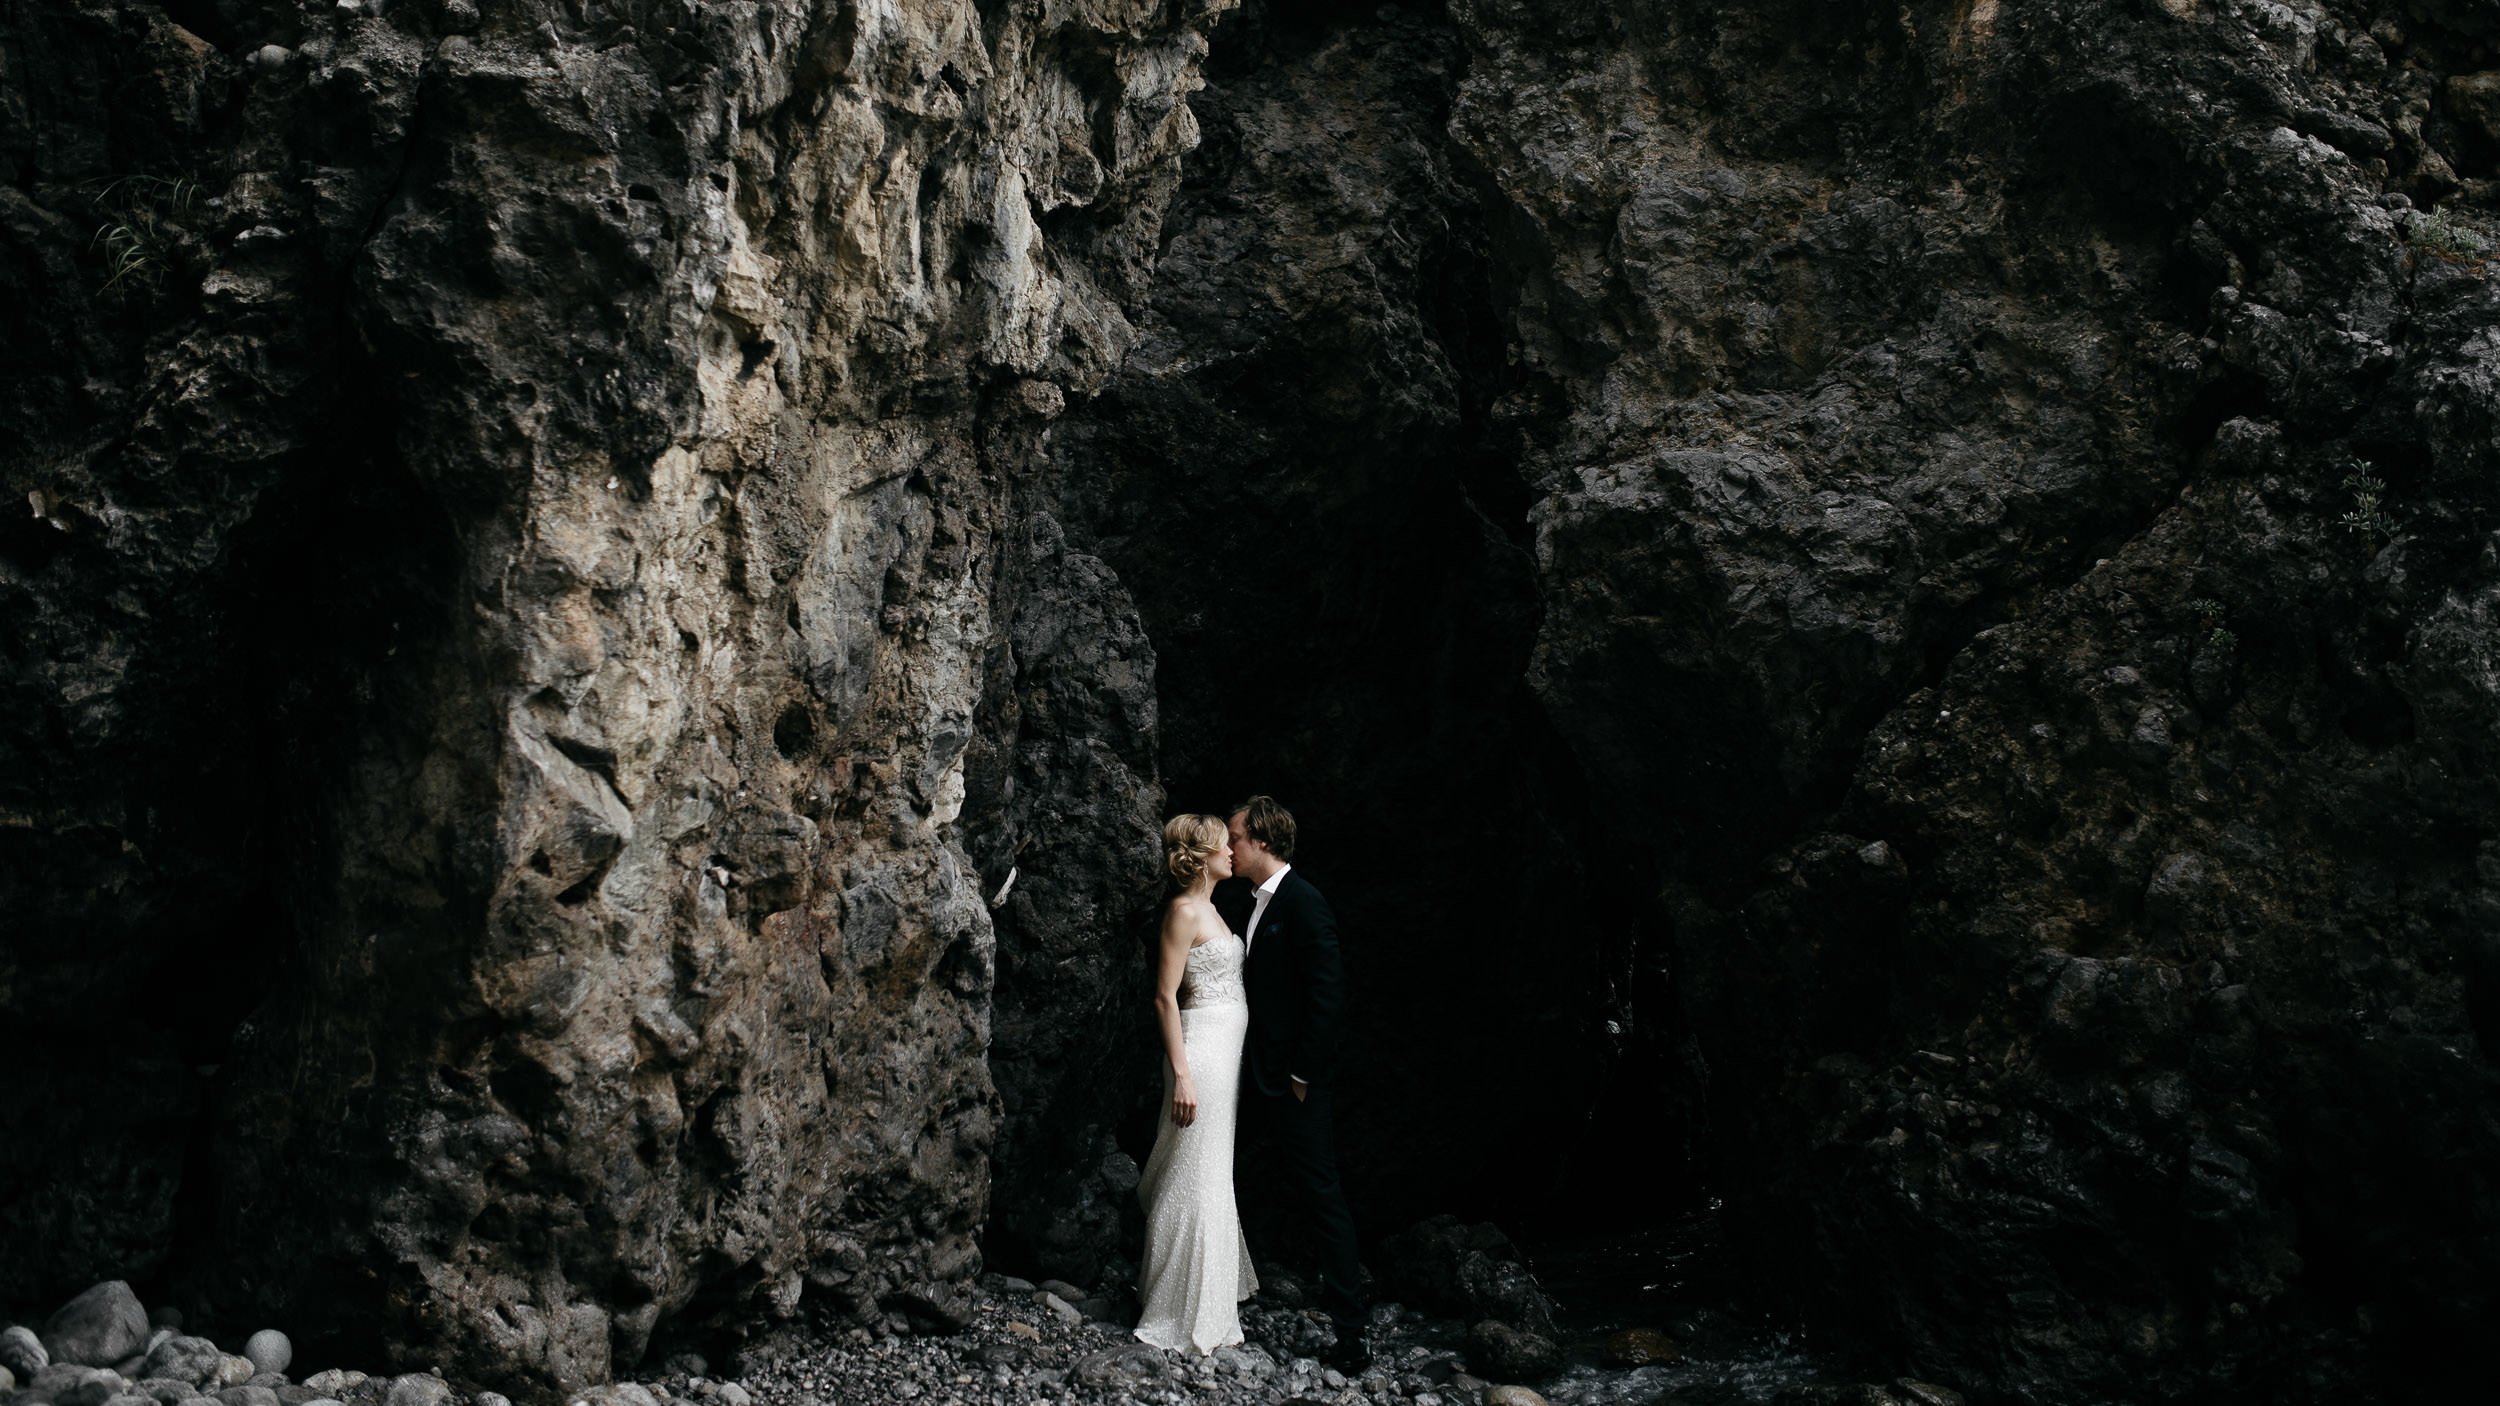 Jean-Laurent Gaudy, Lofoten Destination Wedding Elopement Photographer.